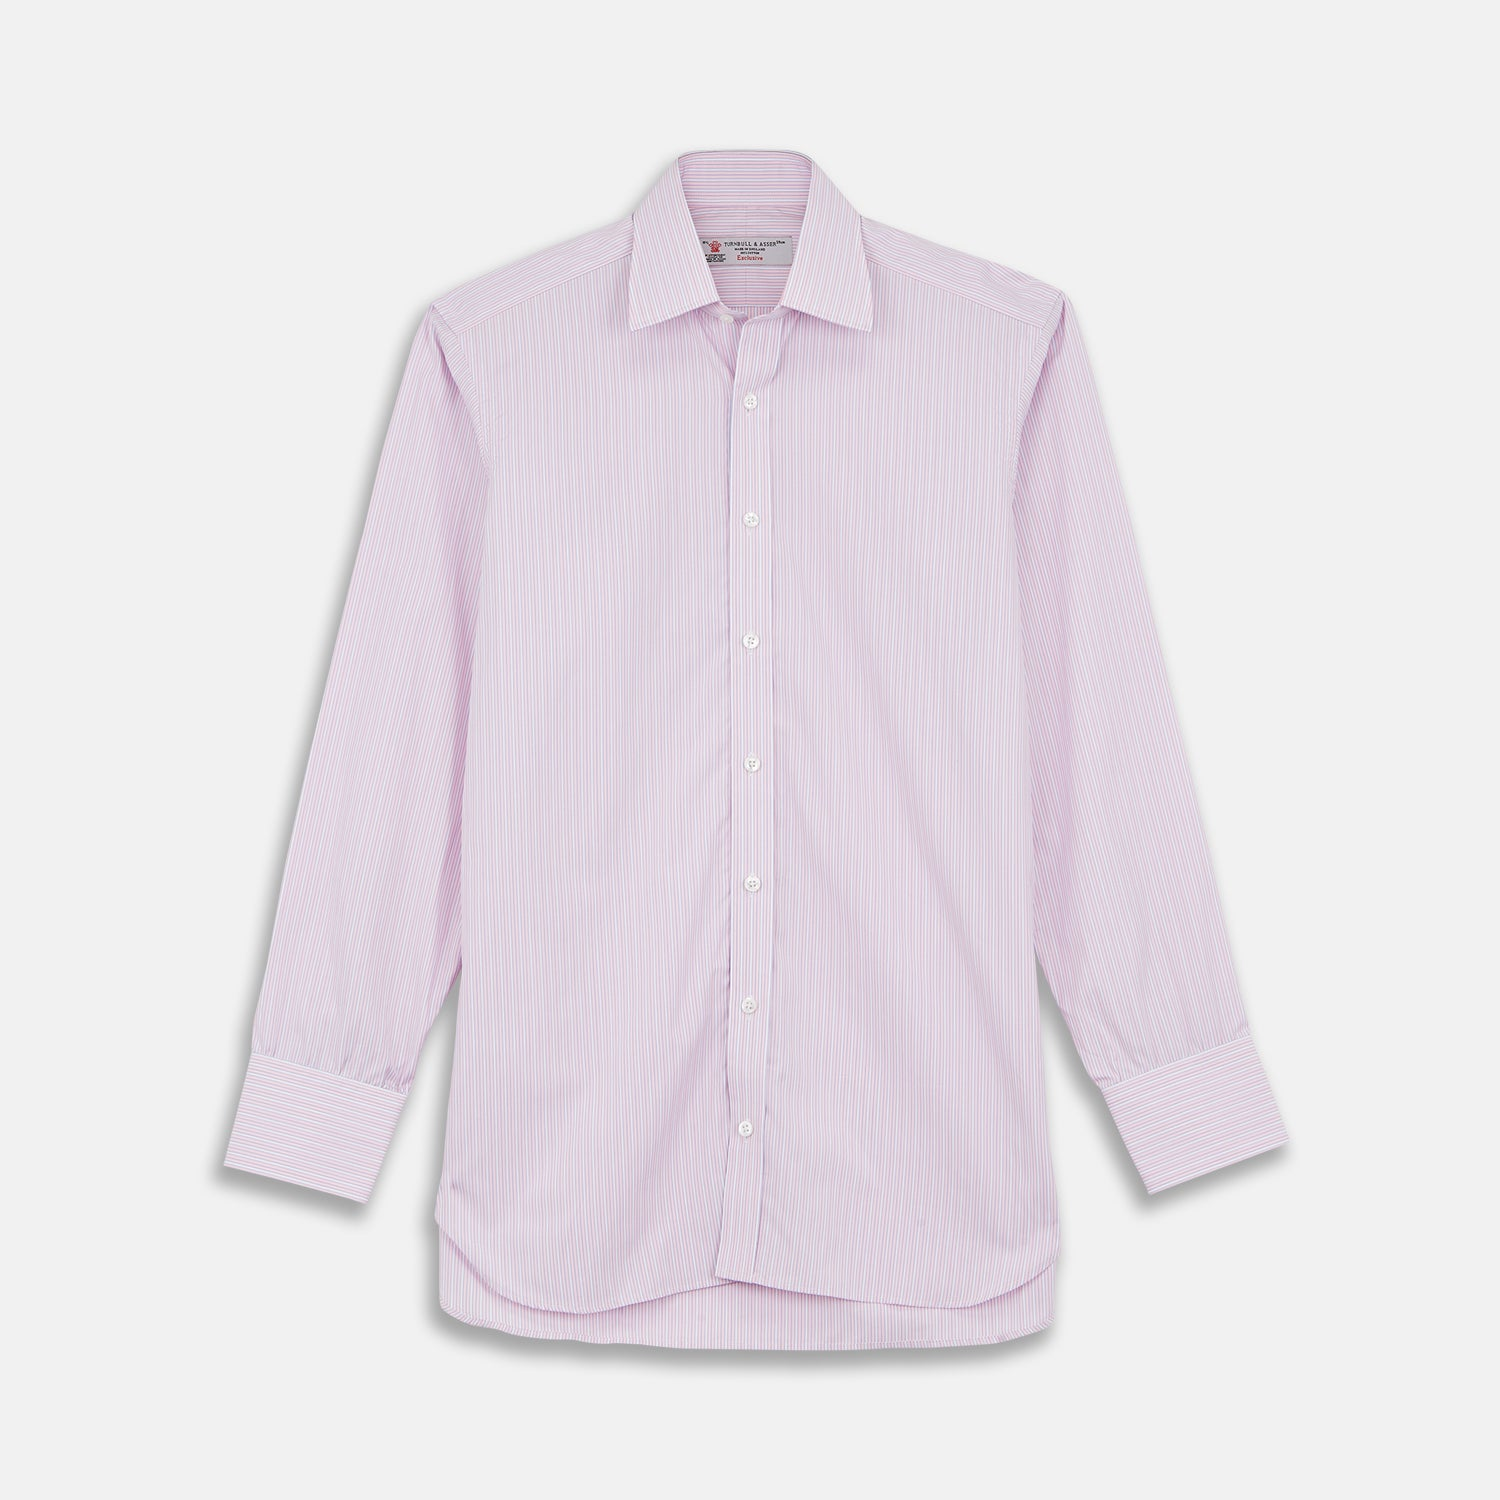 Pink Rich Stripe Shirt with T&A Collar and 3-Button Cuffs - 17.75 from Turnbull & Asser